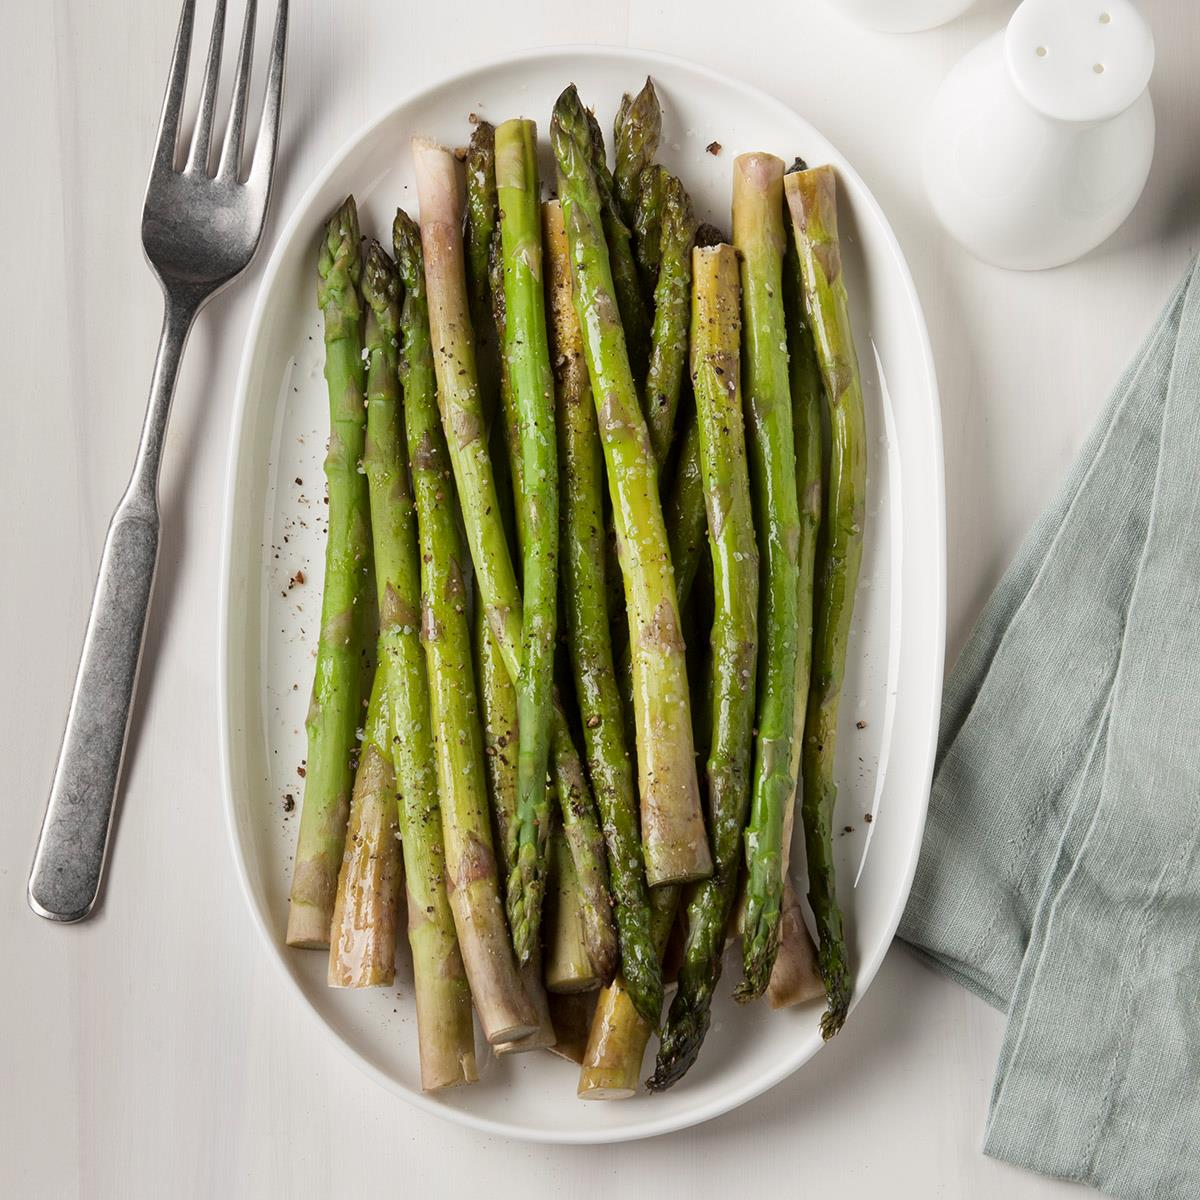 Oven Baked Asparagus Recipe How To Make It Taste Of Home